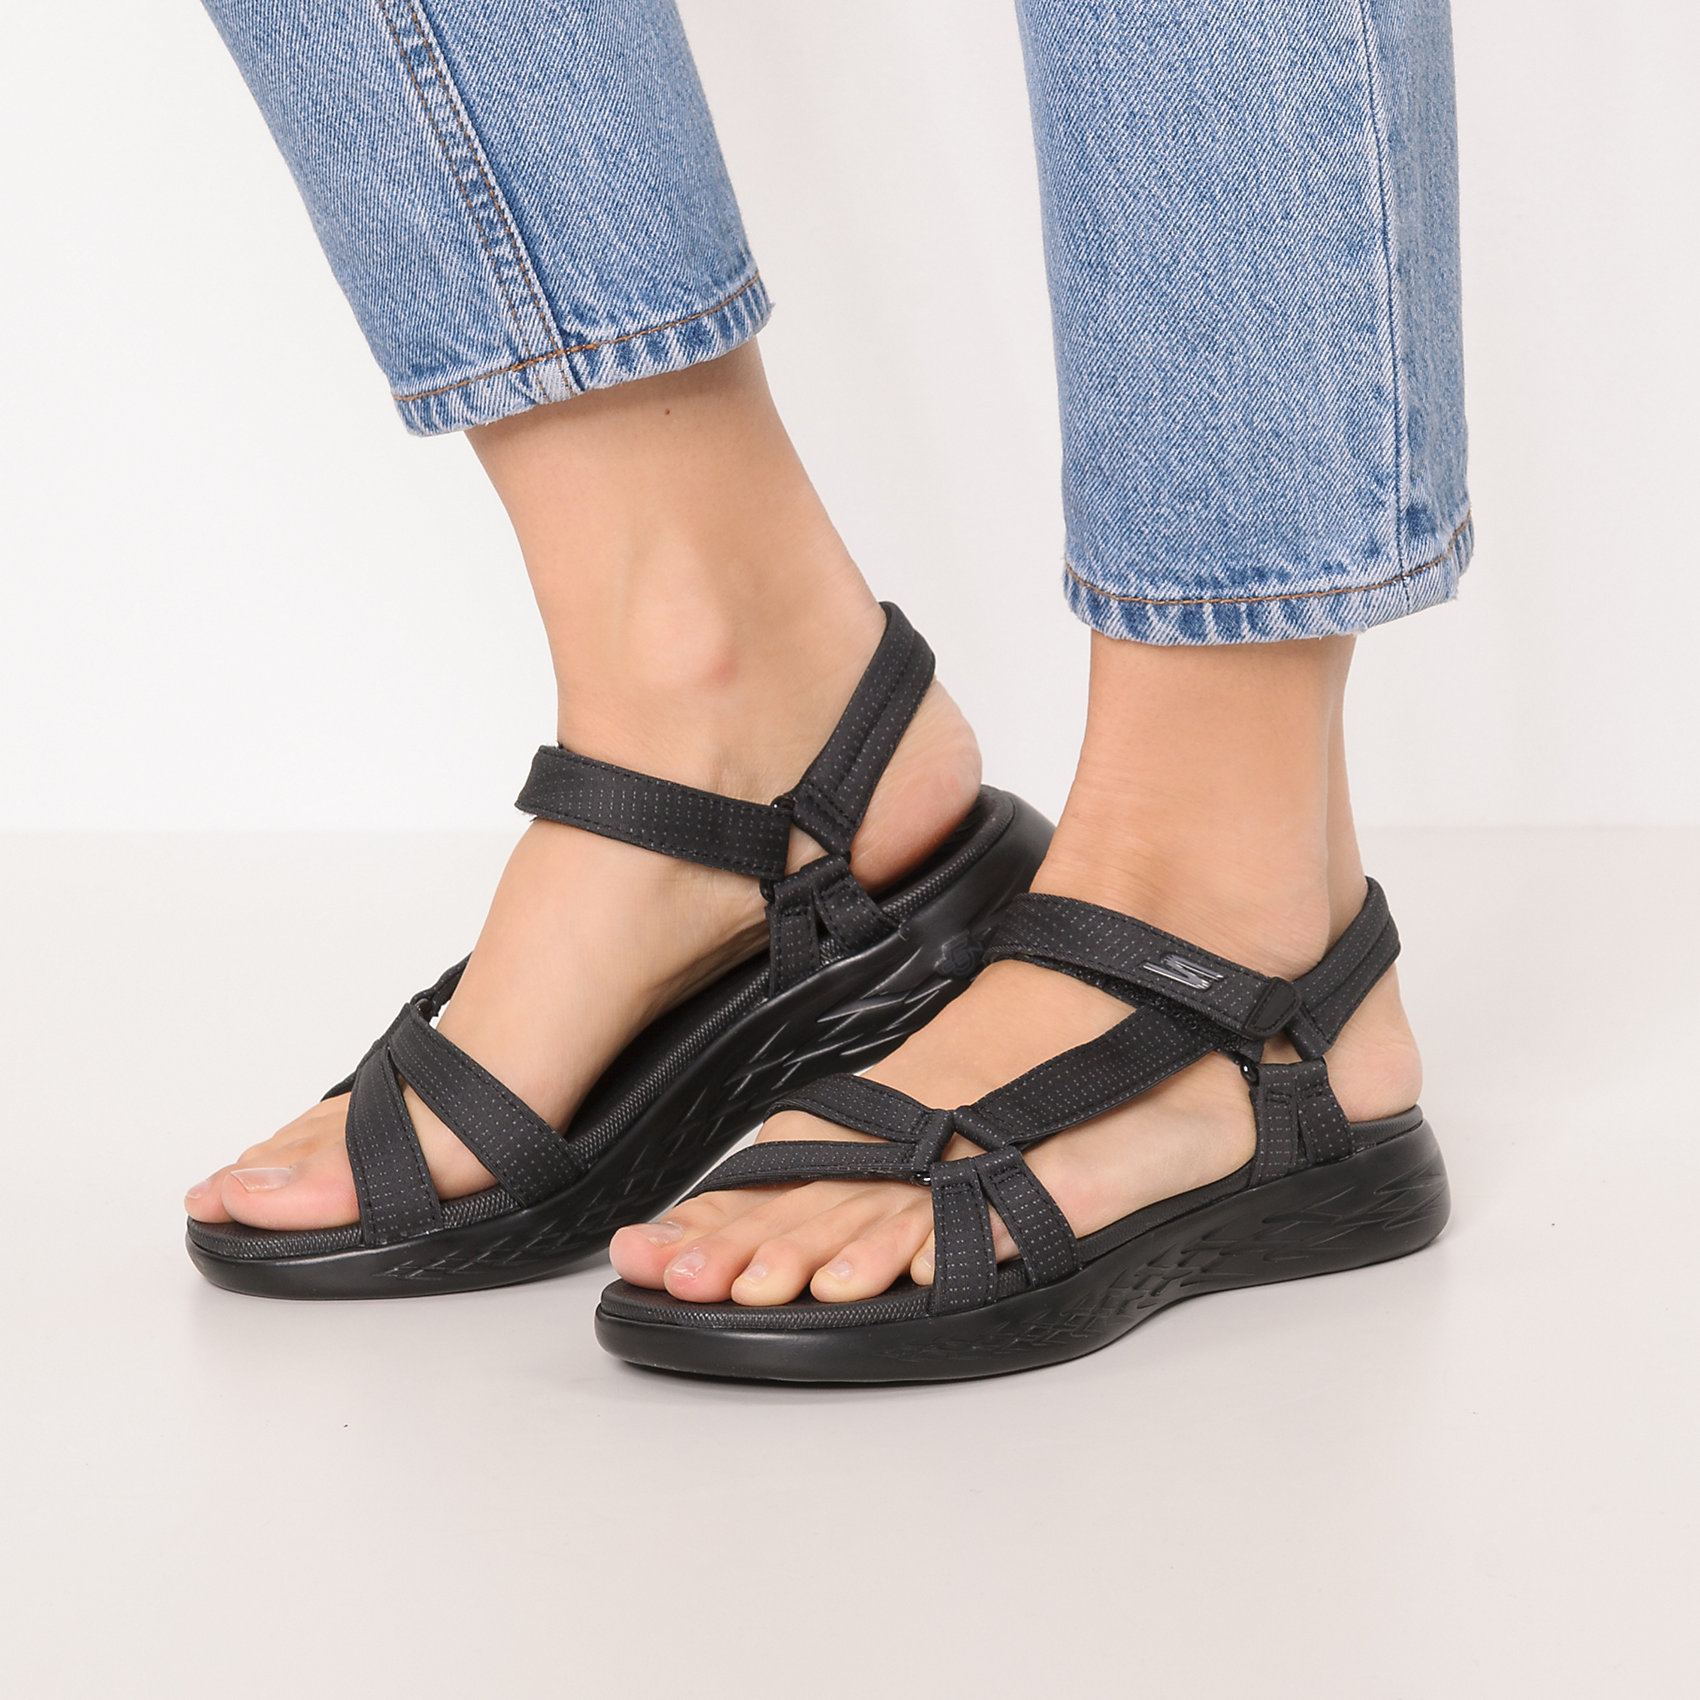 Neu SKECHERS On-the-go 600 Brilliancy Komfort-Sandalen 7393817 für Damen